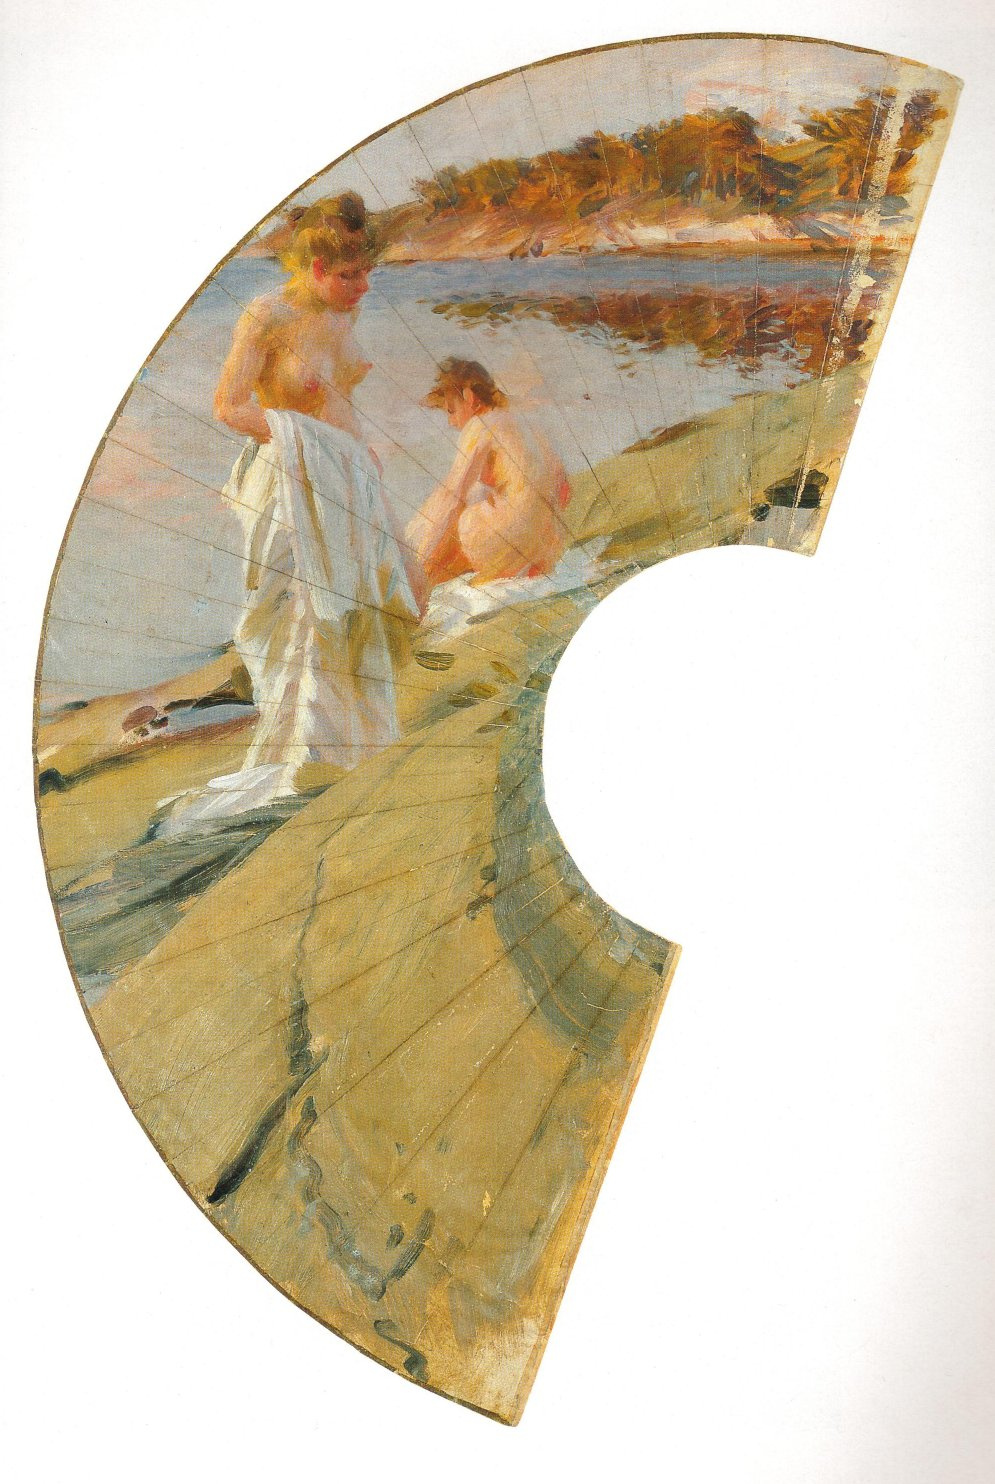 Anders Zorn. Bathers